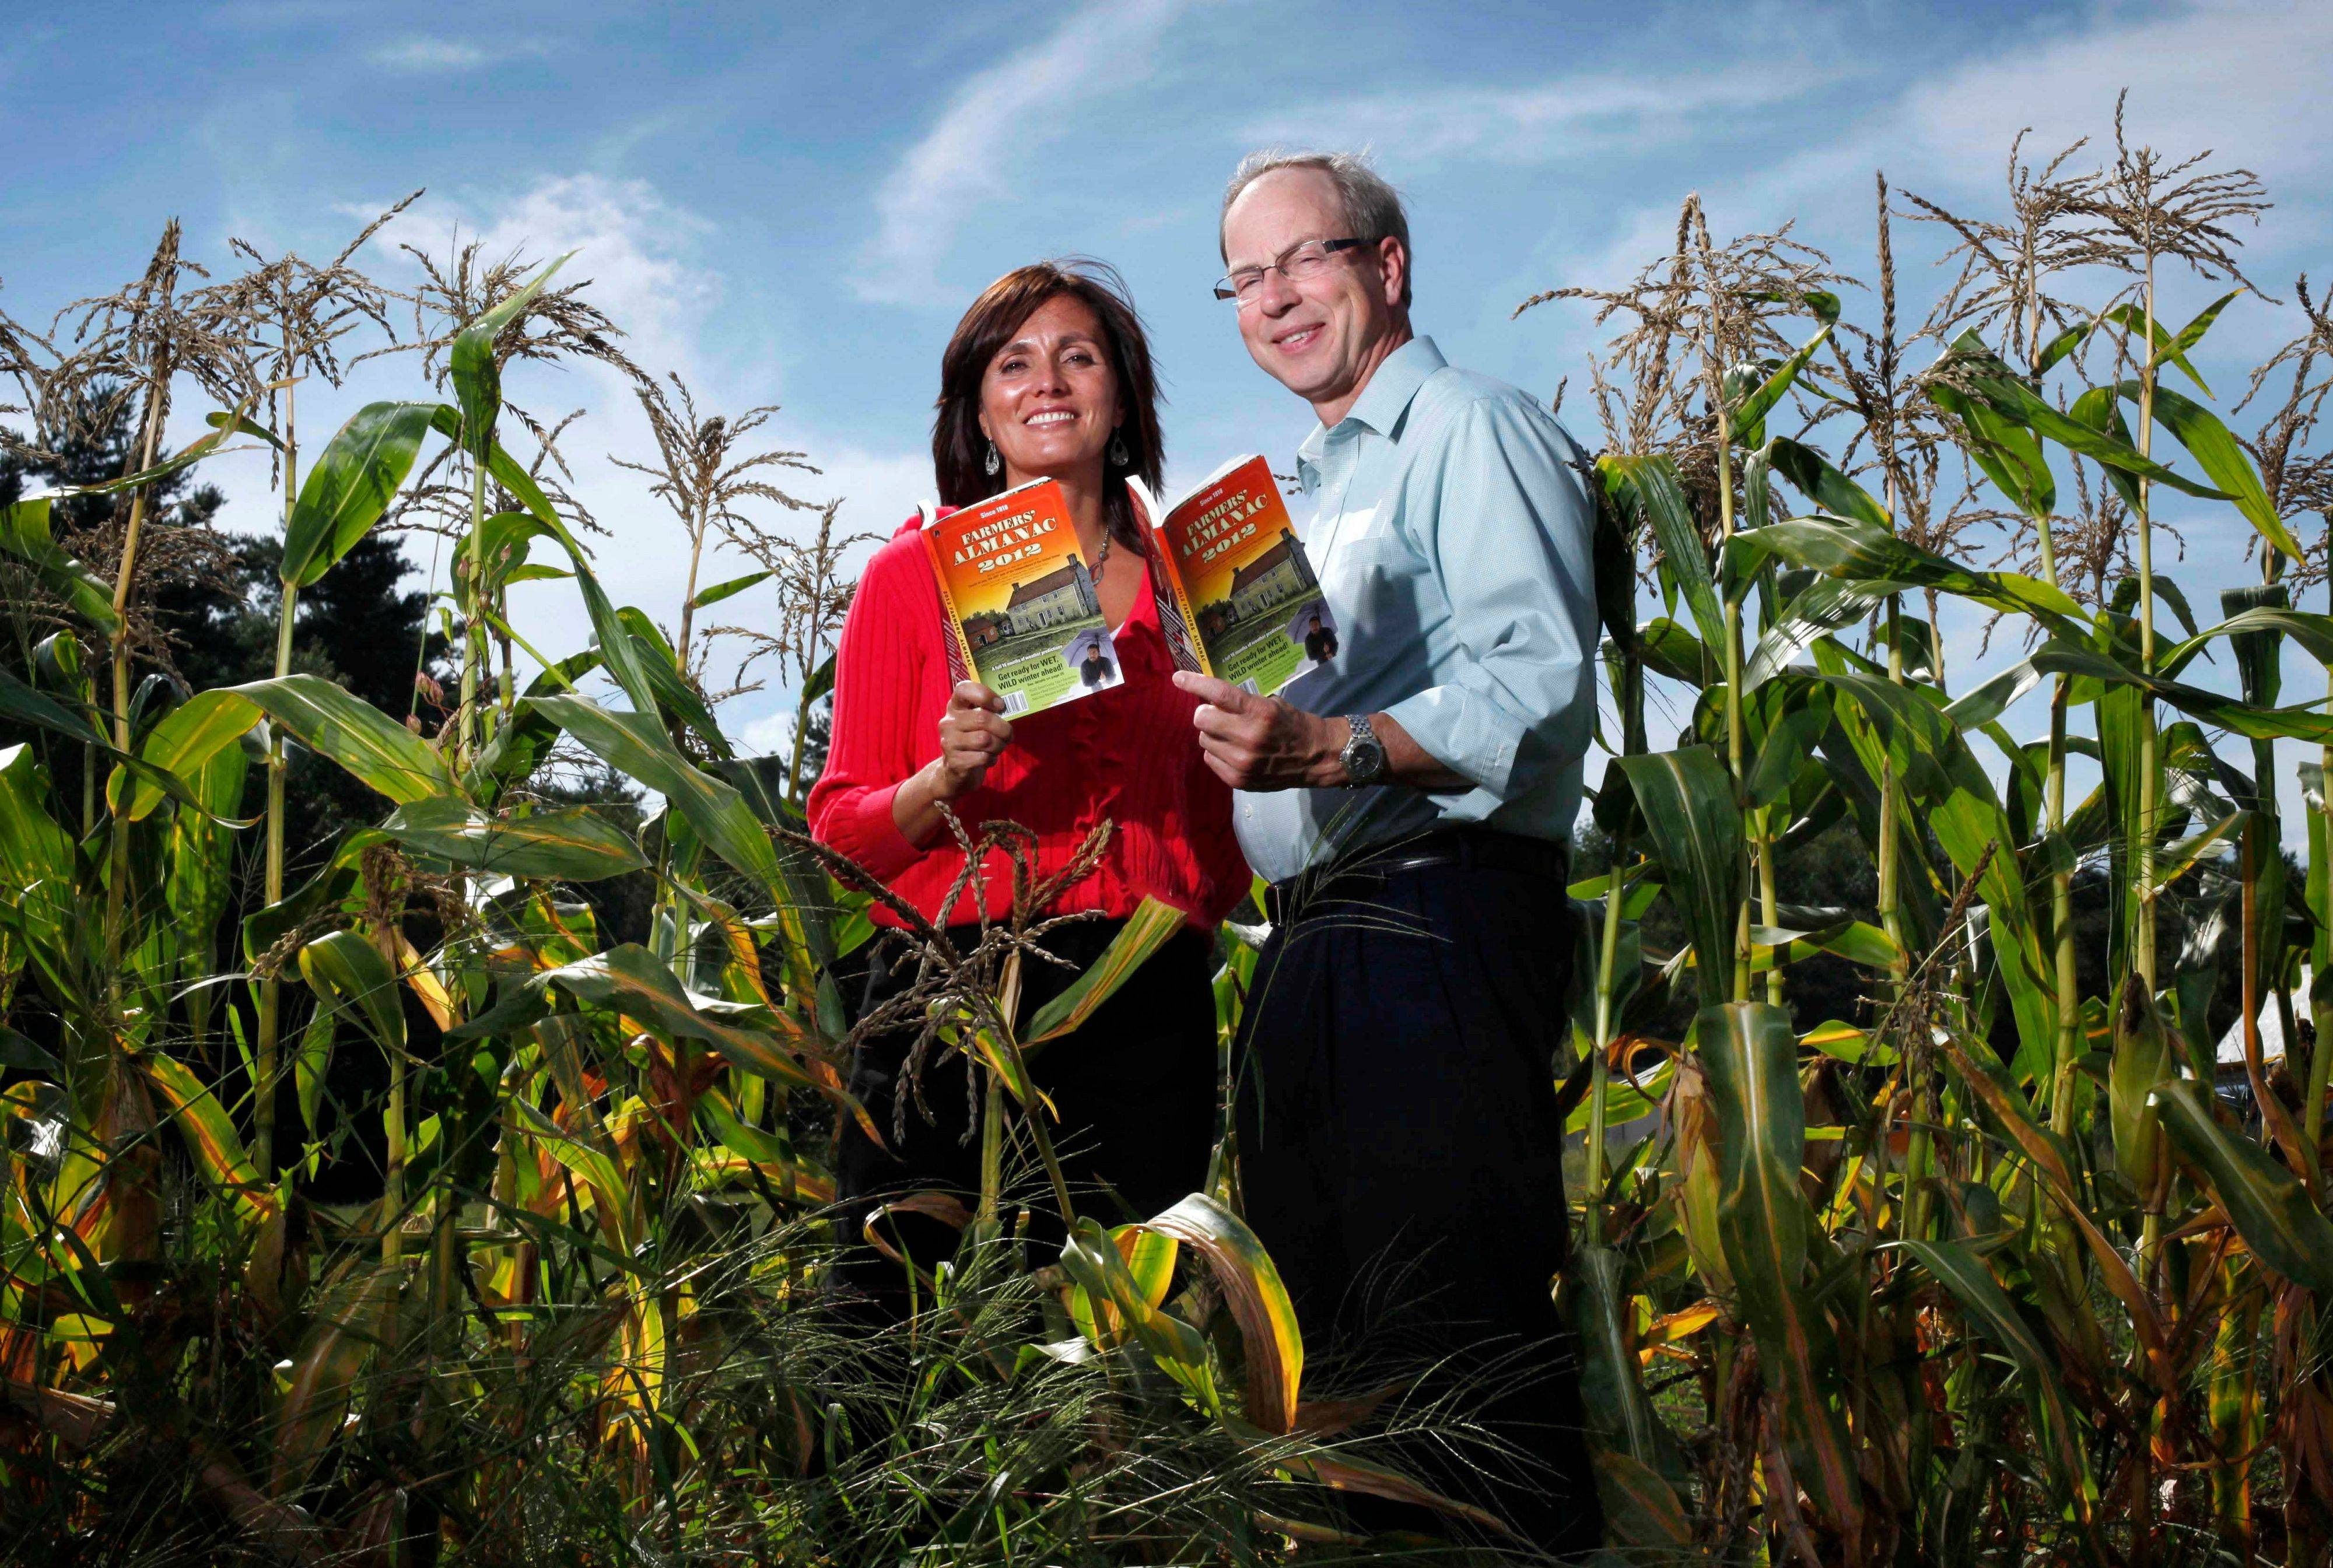 Farmers' Almanac editor Sondra Duncan and publisher Peter Geiger pose in a corn field with the 2012 edition of the almanac. The Almanac is reaching out to readers with an e-reader, mobile website for smart phones, and an app that's in the works.